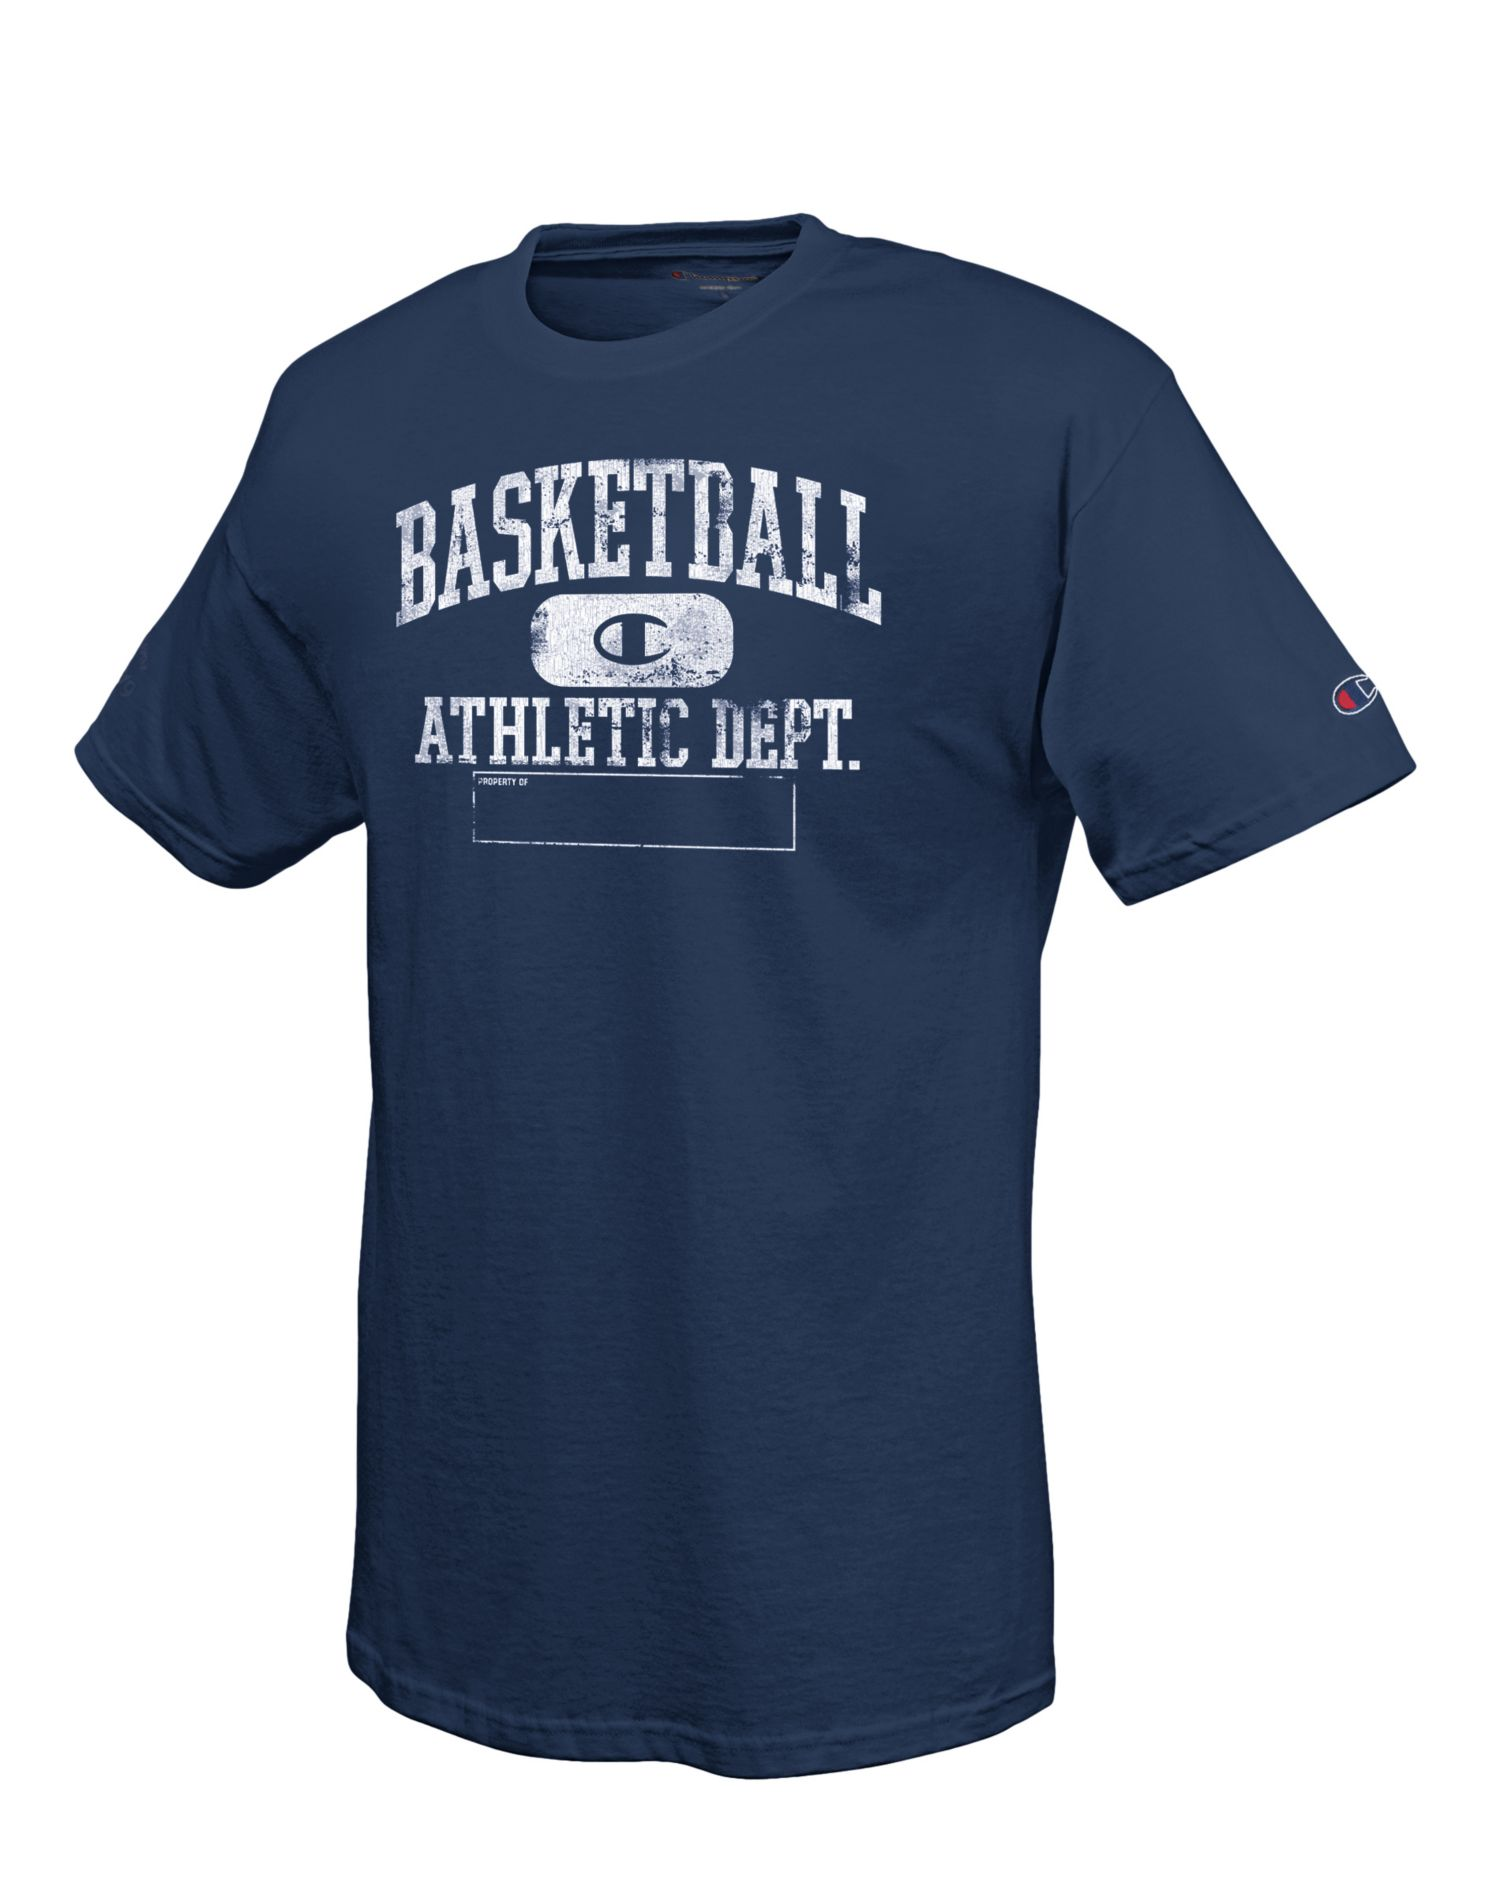 Champion cgt111 100 cotton men 39 s t shirt with for Men s basketball t shirts